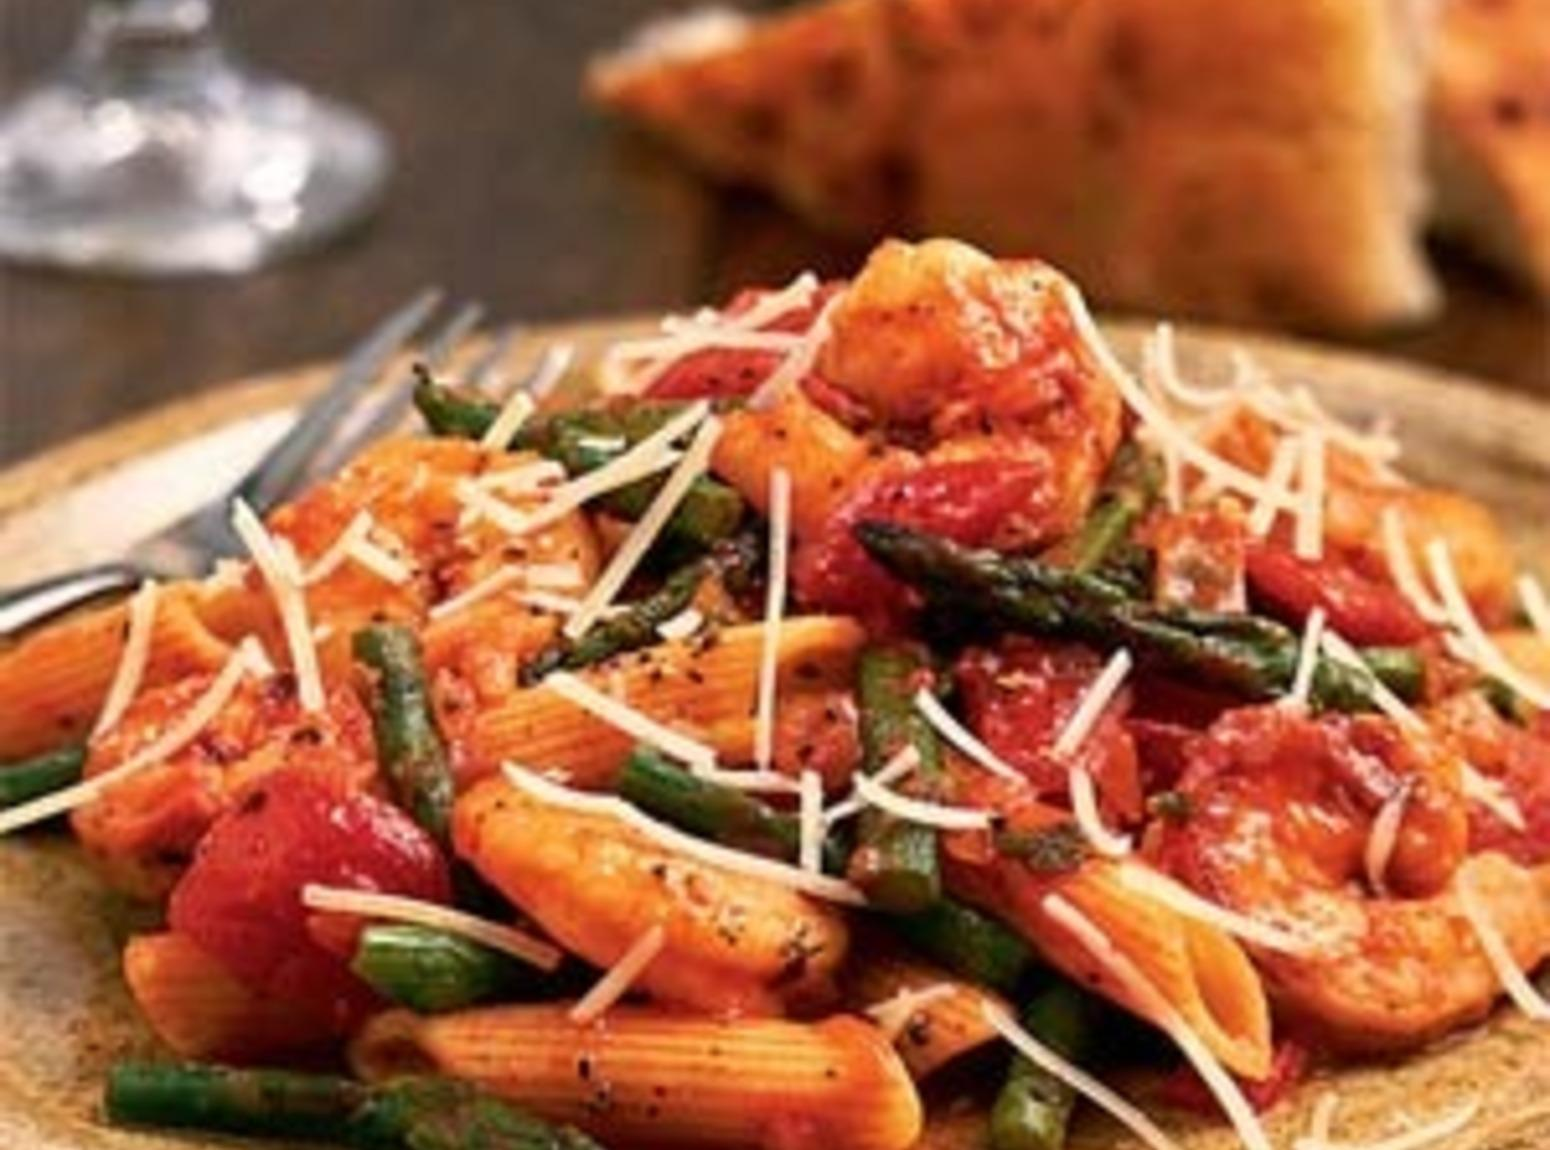 Shrimp Penne Pasta with Artichoke or Asparagus Recipe